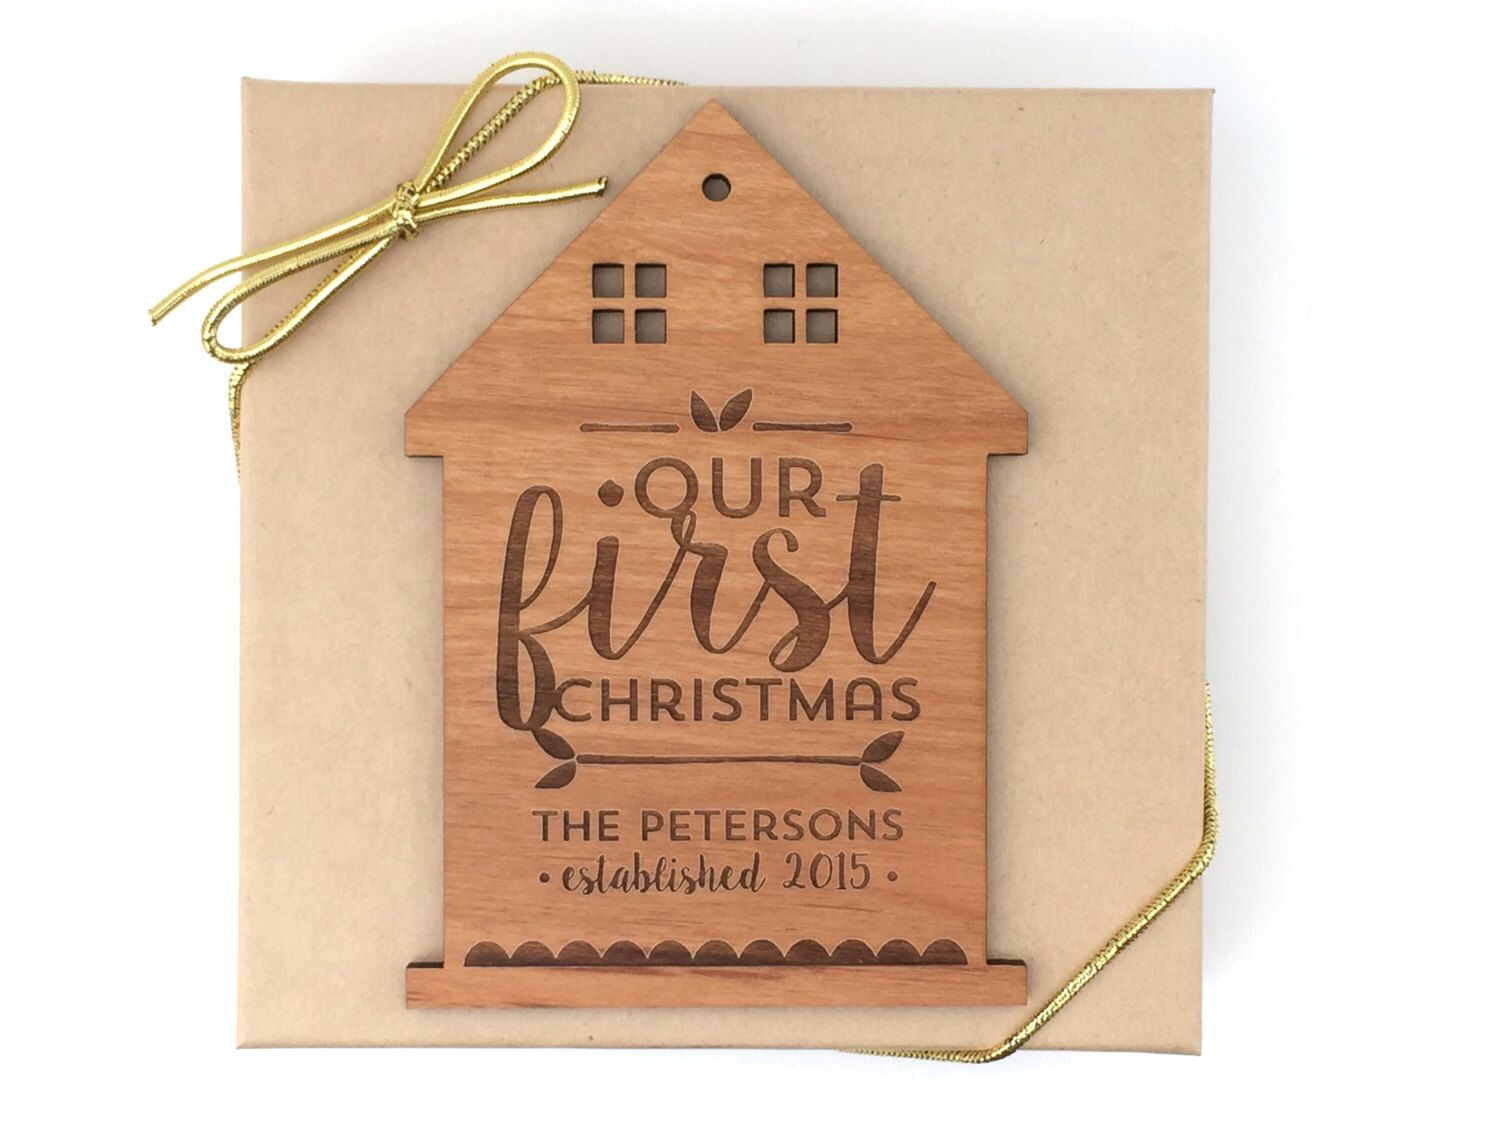 Custom first christmas ornament - Our First Christmas Ornament Personalized Wedding Wood House Custom Laser Engraved House Our 1st Christmas Home Ornament